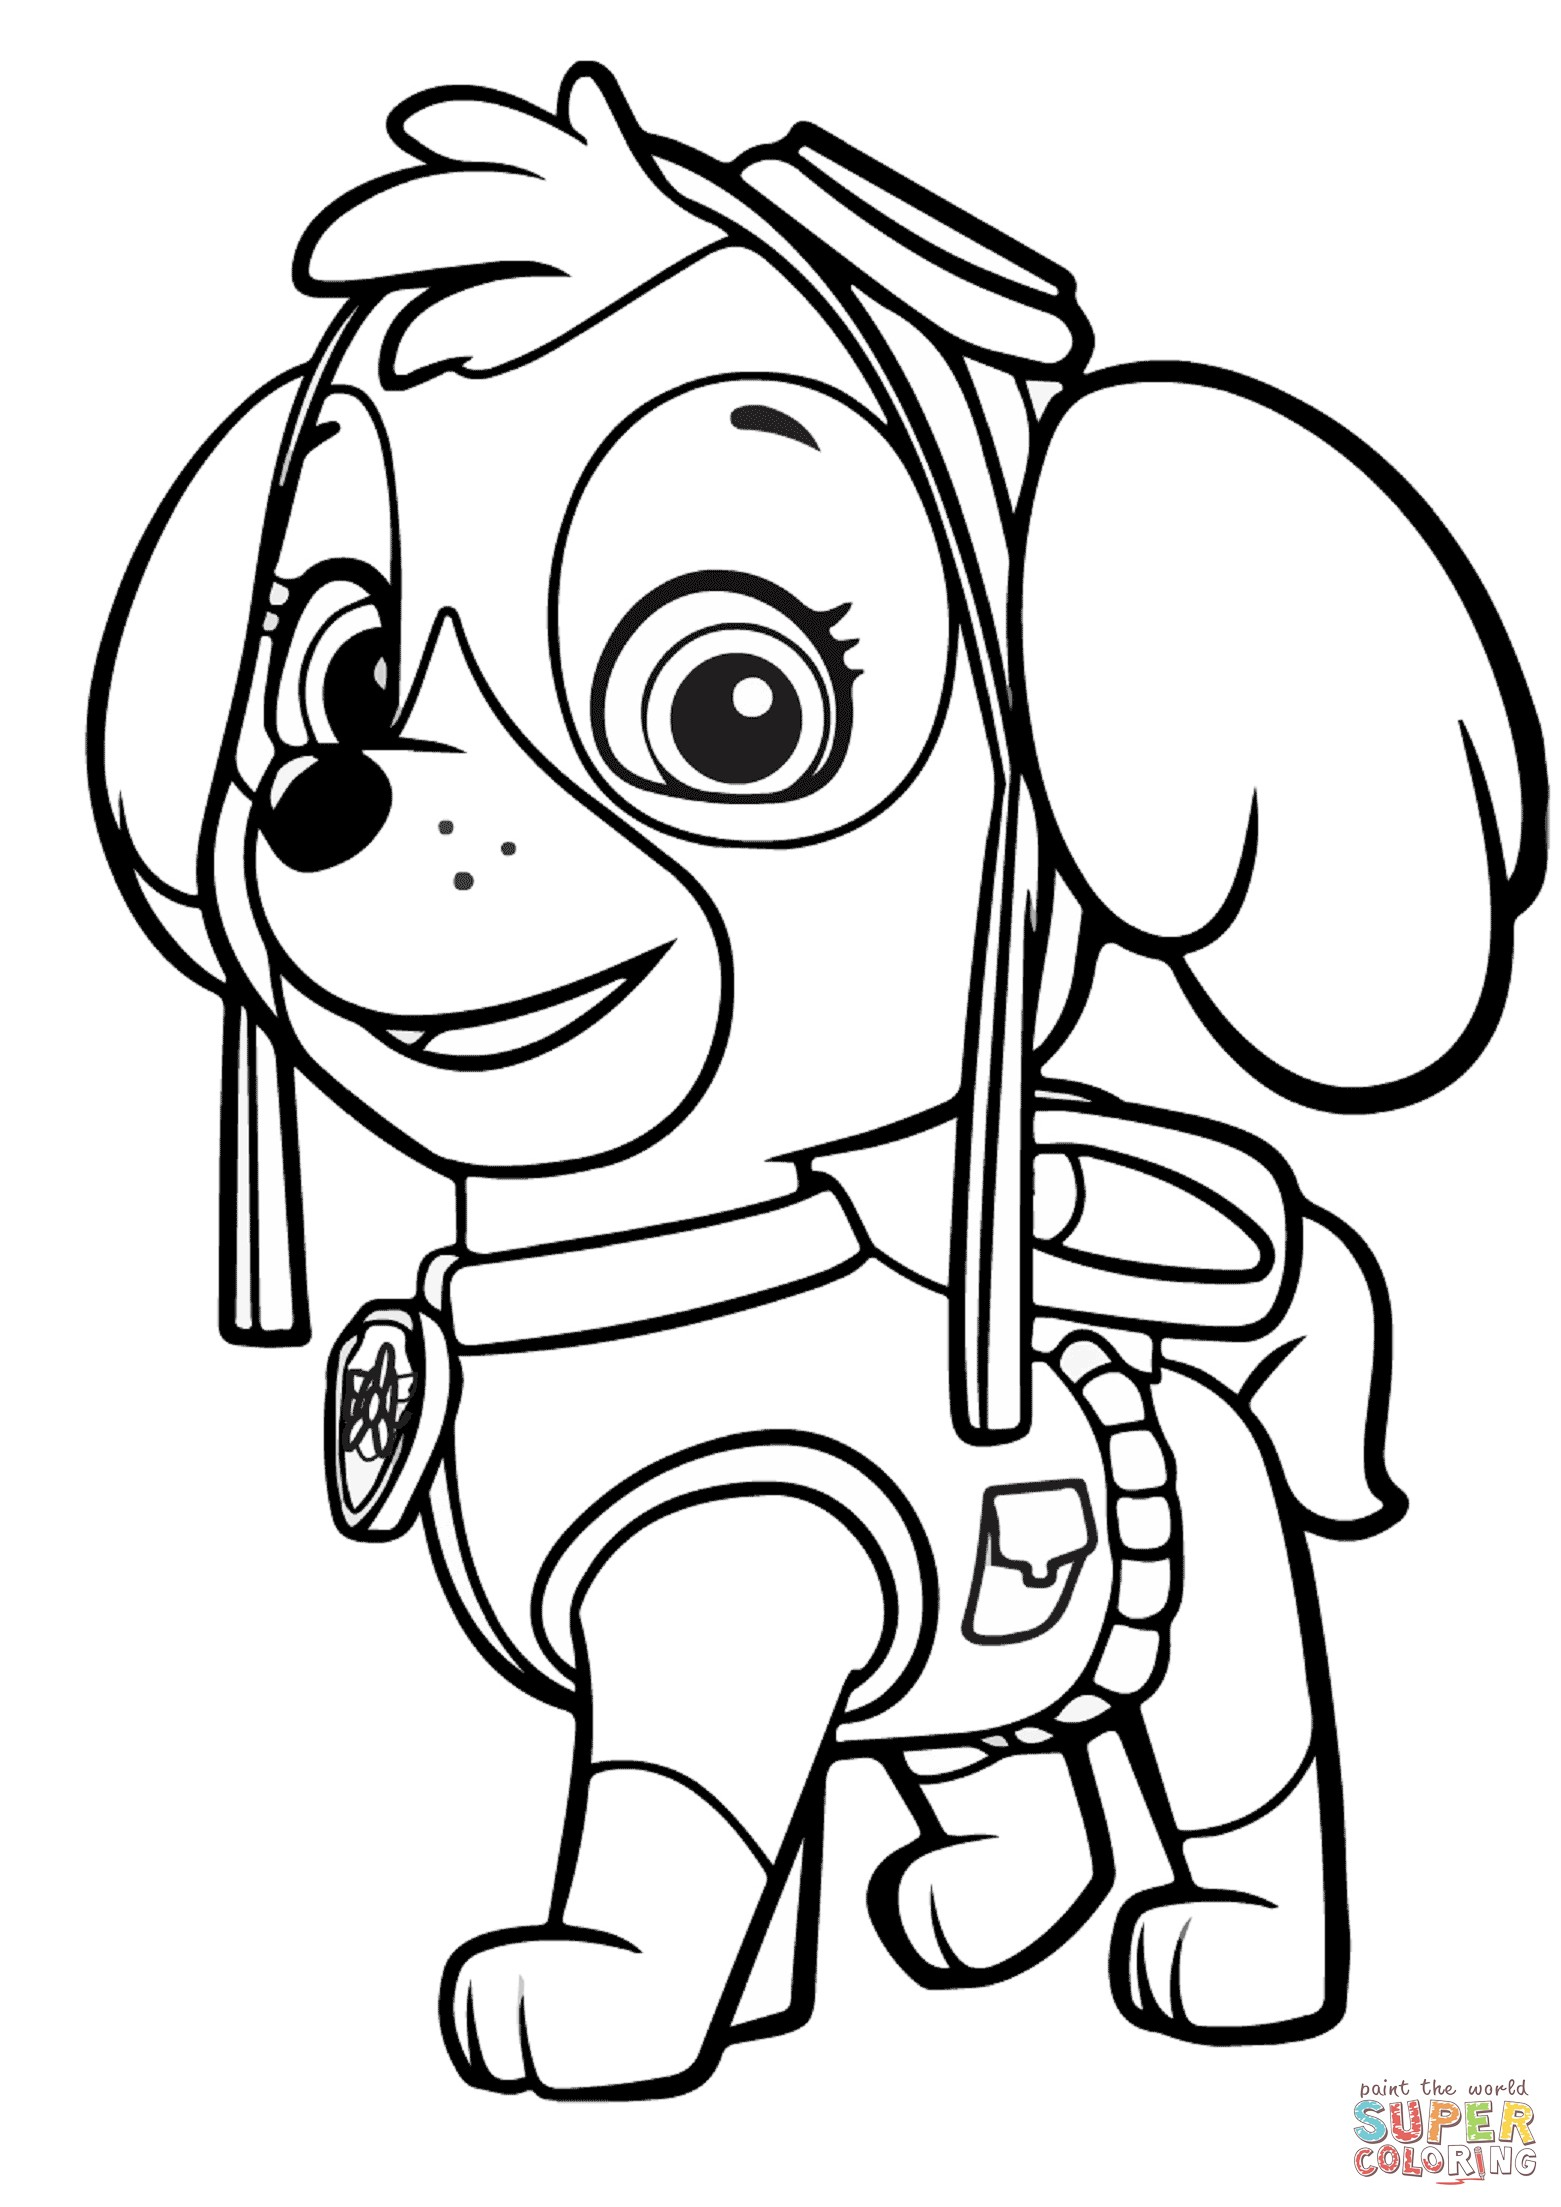 Patrol marshall new pages. Paw clipart coloring page clipart royalty free